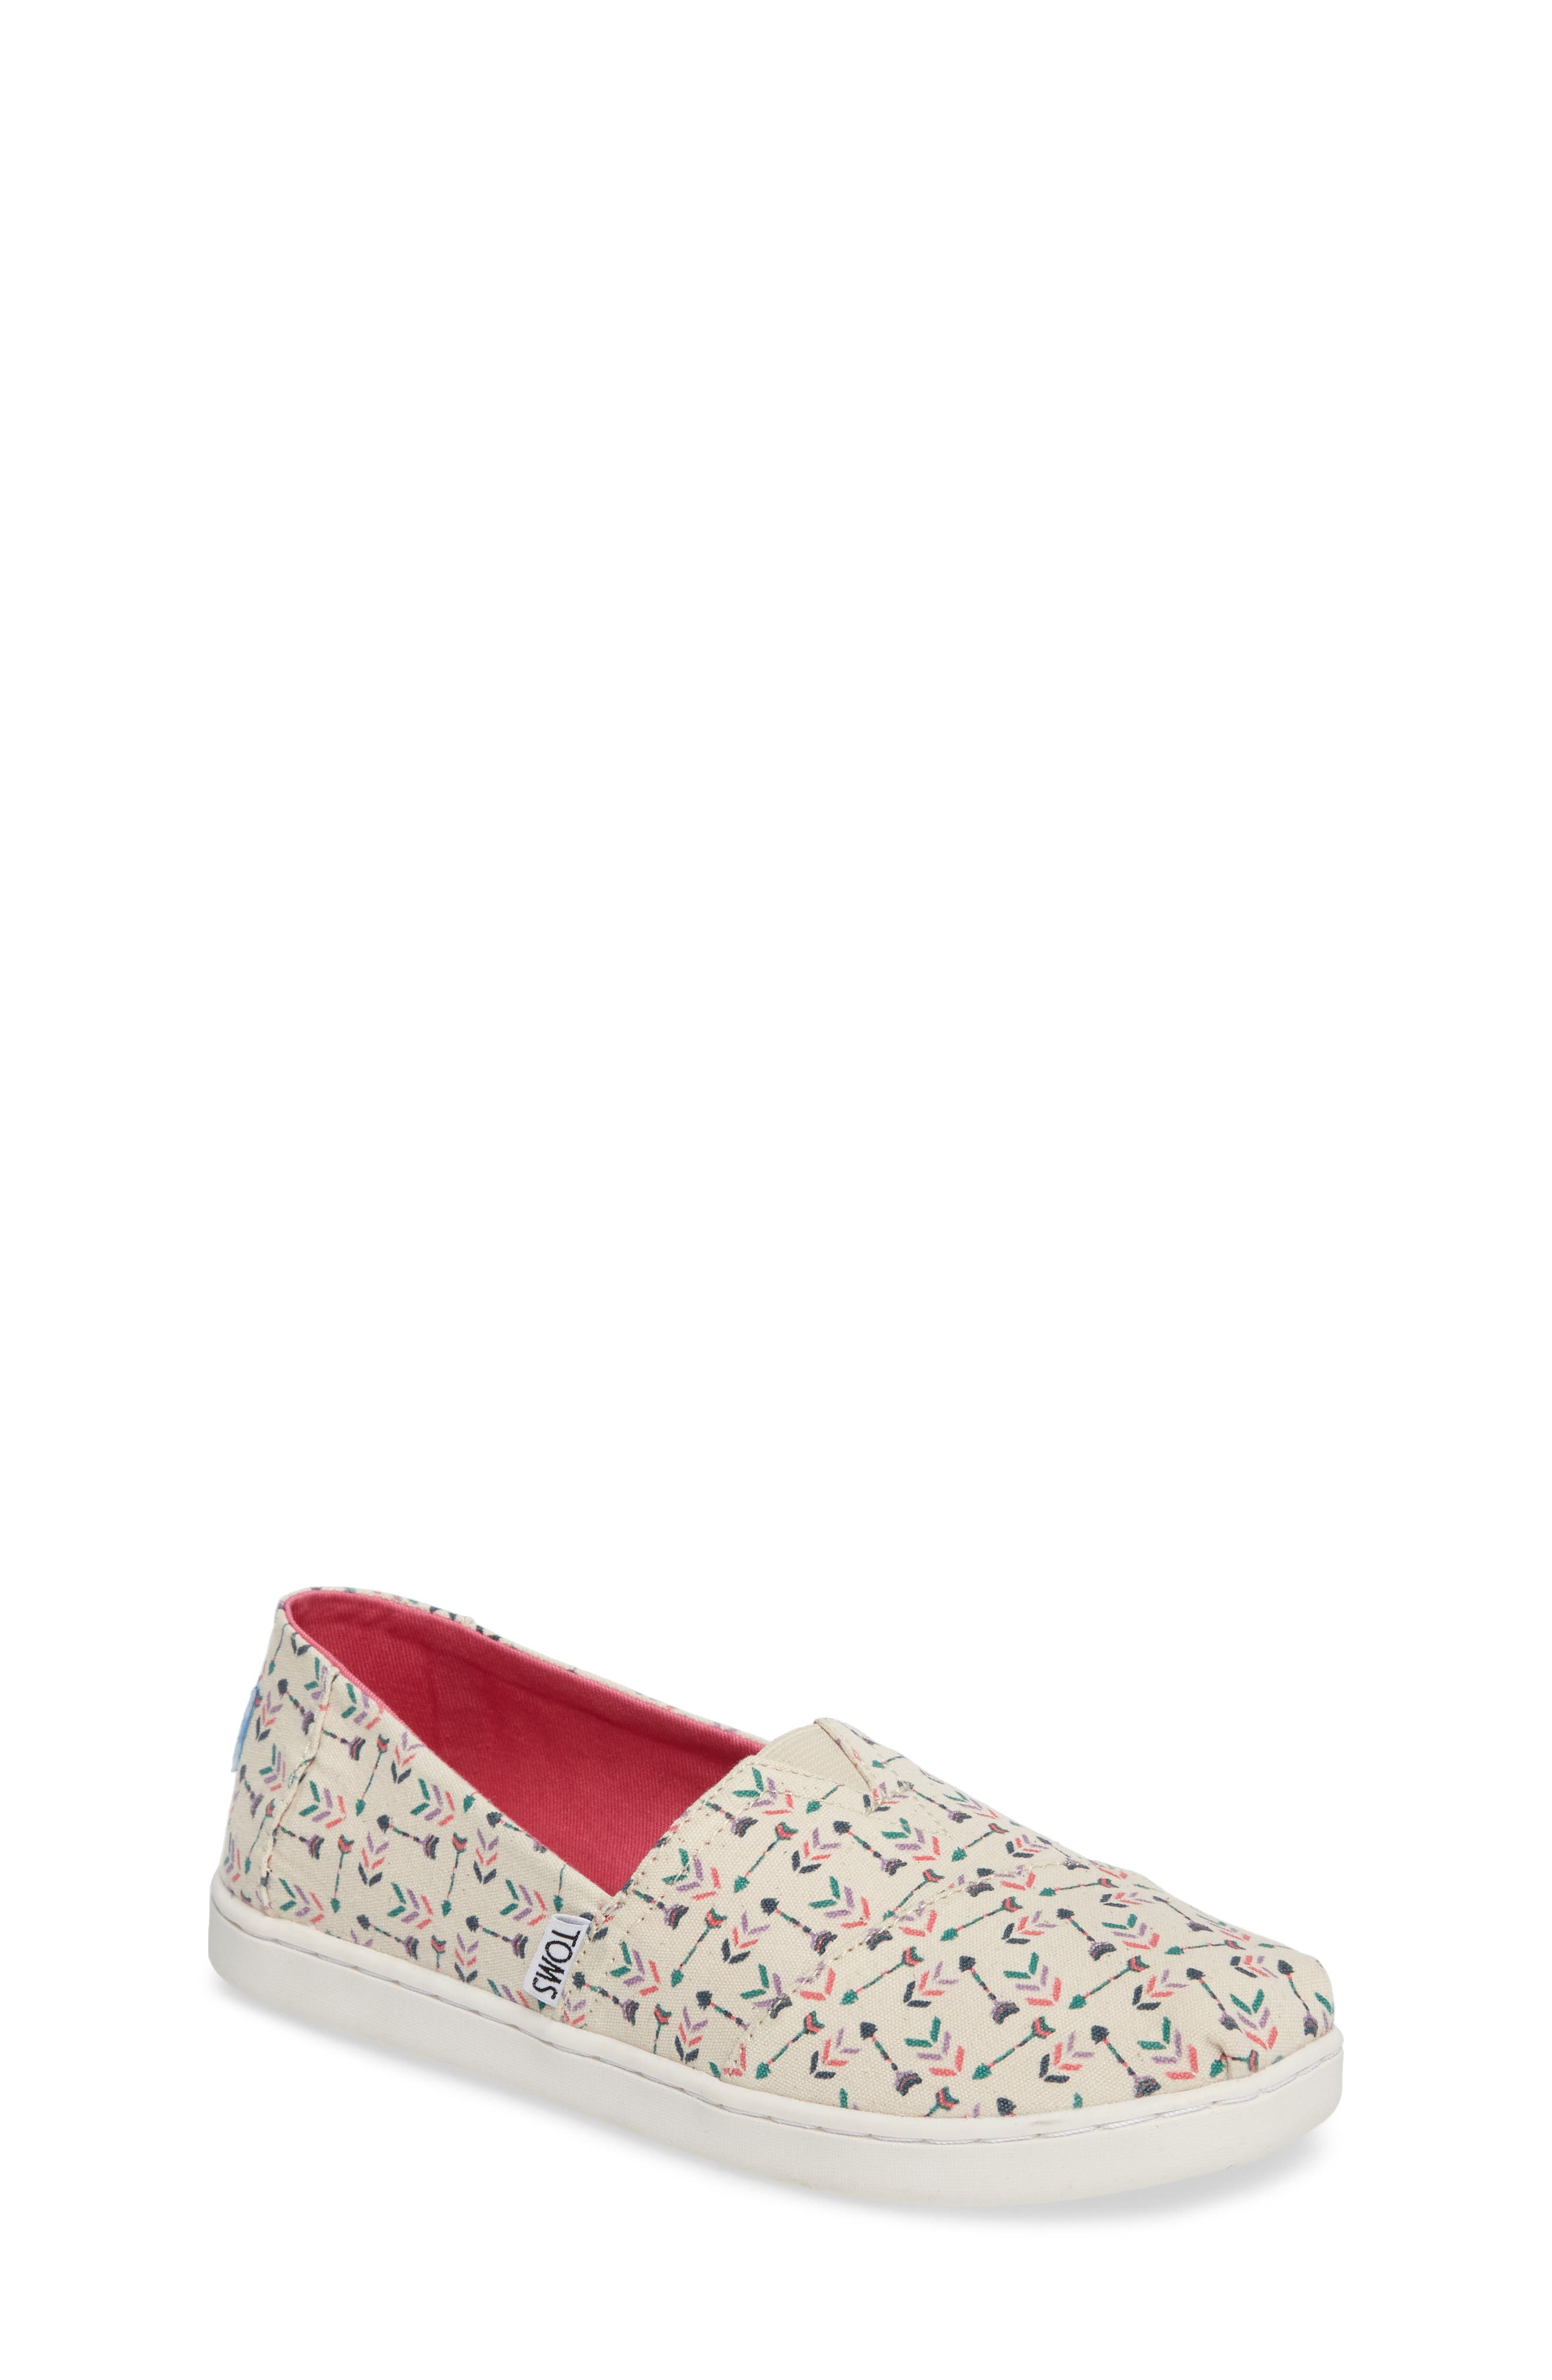 TOMS Classic Alpargata Arrow Print Slip-On (Toddler, Little Kid & Big Kid)